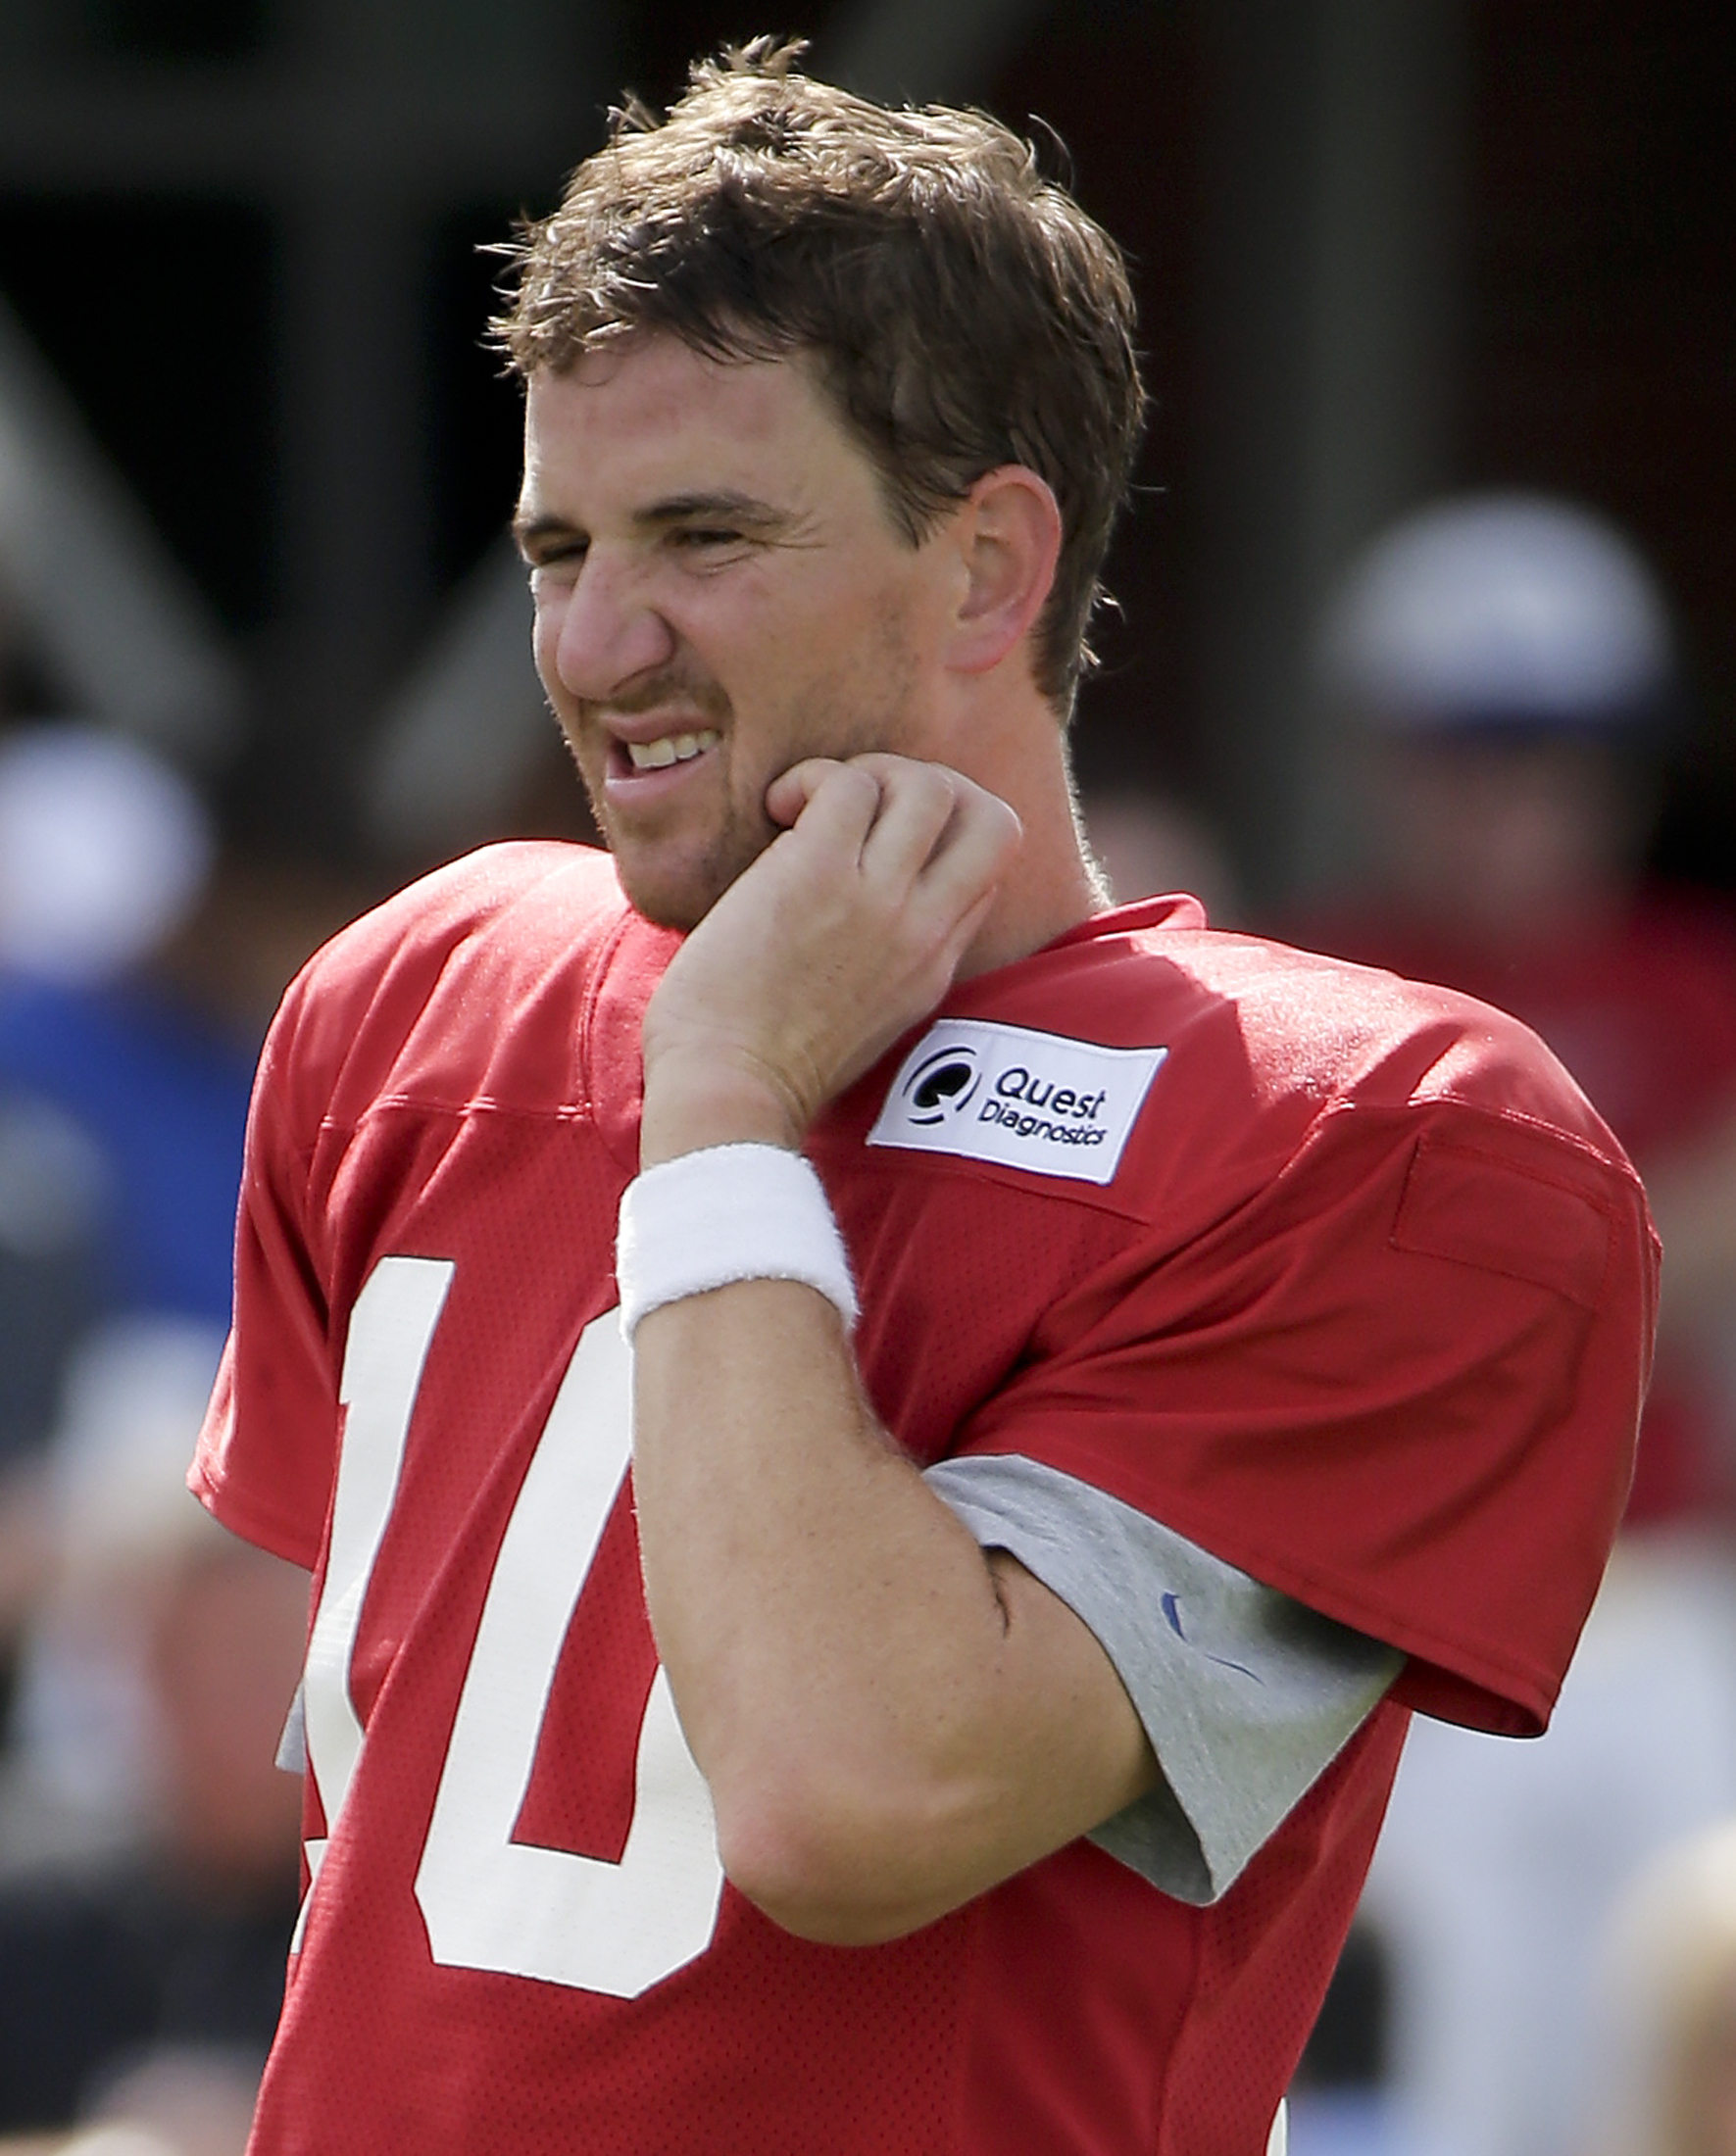 New York Giants quarterback Eli Manning (10) walks to the sideline between drills during the team's NFL football training camp, Thursday, Aug. 6, 2015, in East Rutherford, N.J. (AP Photo/Julie Jacobson)